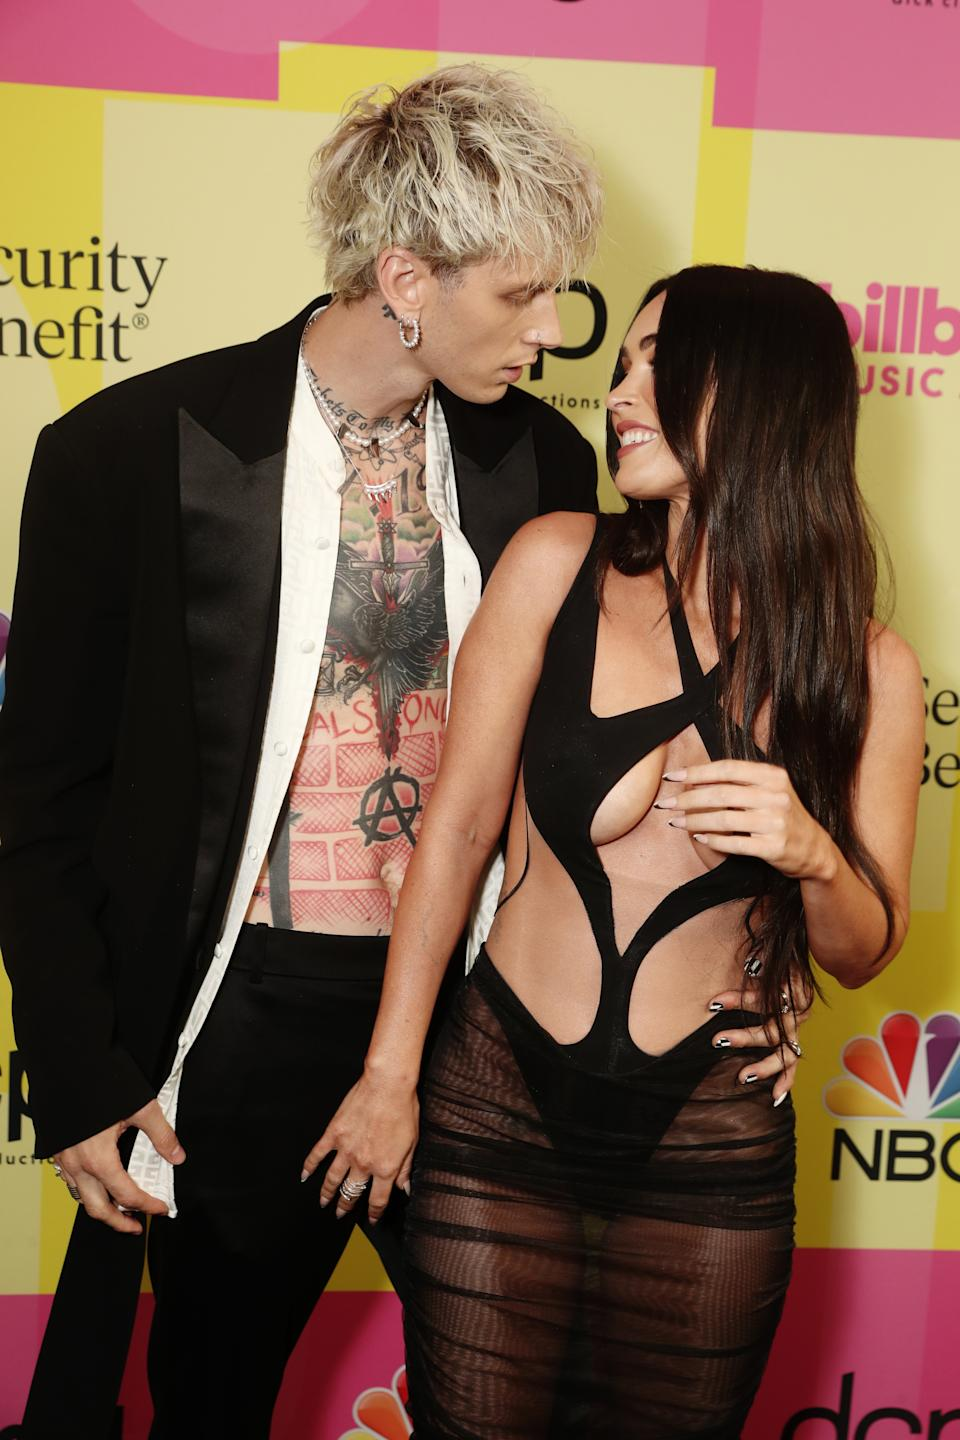 LOS ANGELES, CA - MAY 23:  2021 BILLBOARD MUSIC AWARDS -- Pictured: (l-r) Machine Gun Kelly and Megan Fox arrive to the 2021 Billboard Music Awards held at the Microsoft Theater on May 23, 2021 in Los Angeles, California. --  (Photo by Todd Williamson/NBC/NBCU Photo Bank via Getty Images)